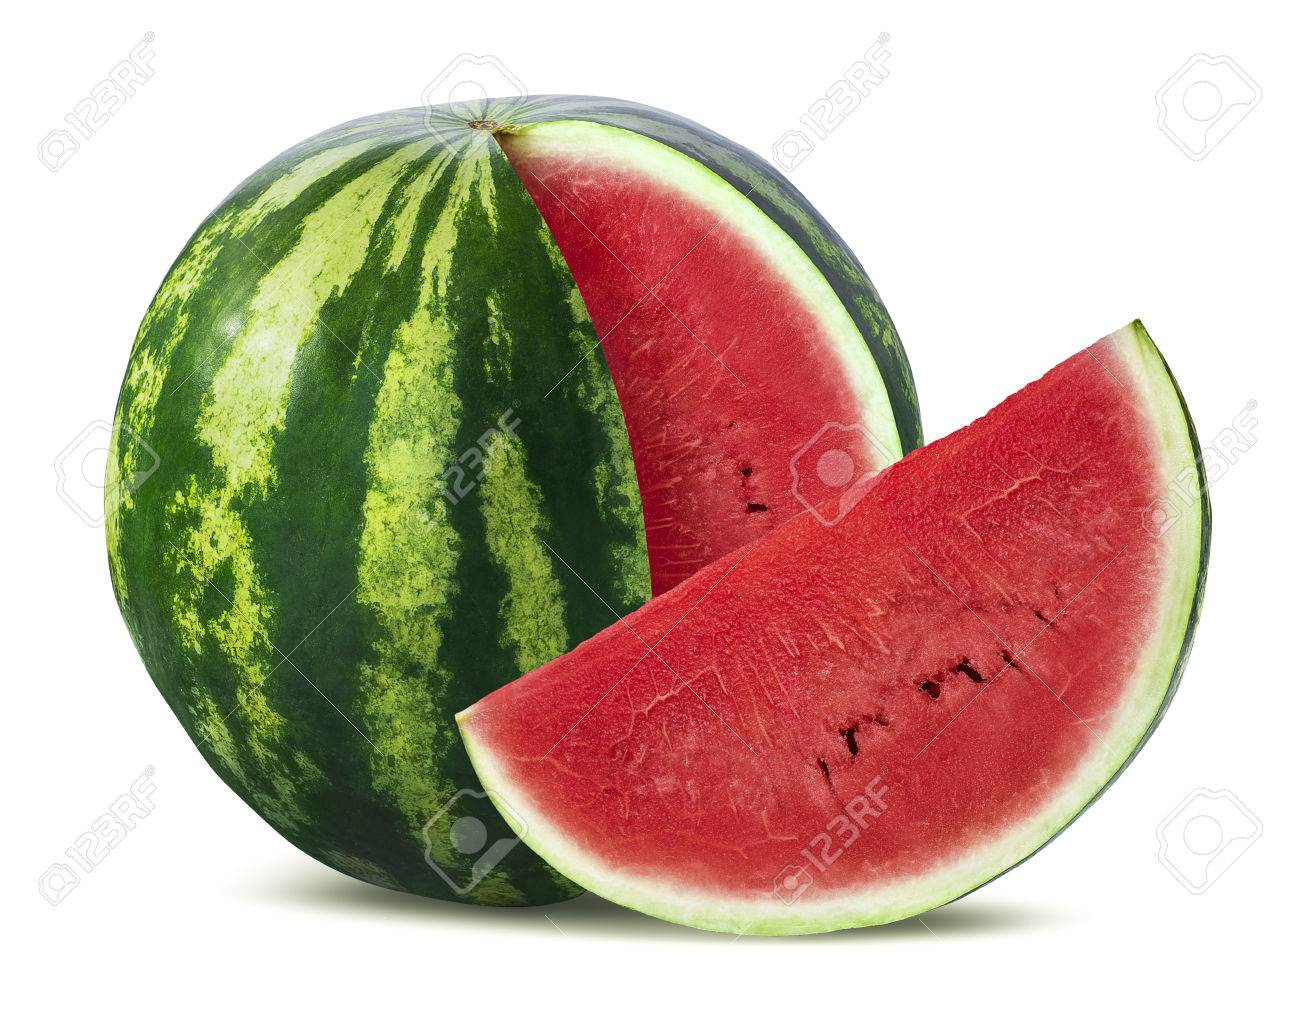 https://previews.123rf.com/images/kovalevaka/kovalevaka1409/kovalevaka140900014/31606320-big-watermelon-and-slice-isolated-on-white-background-as-package-design-element.jpg